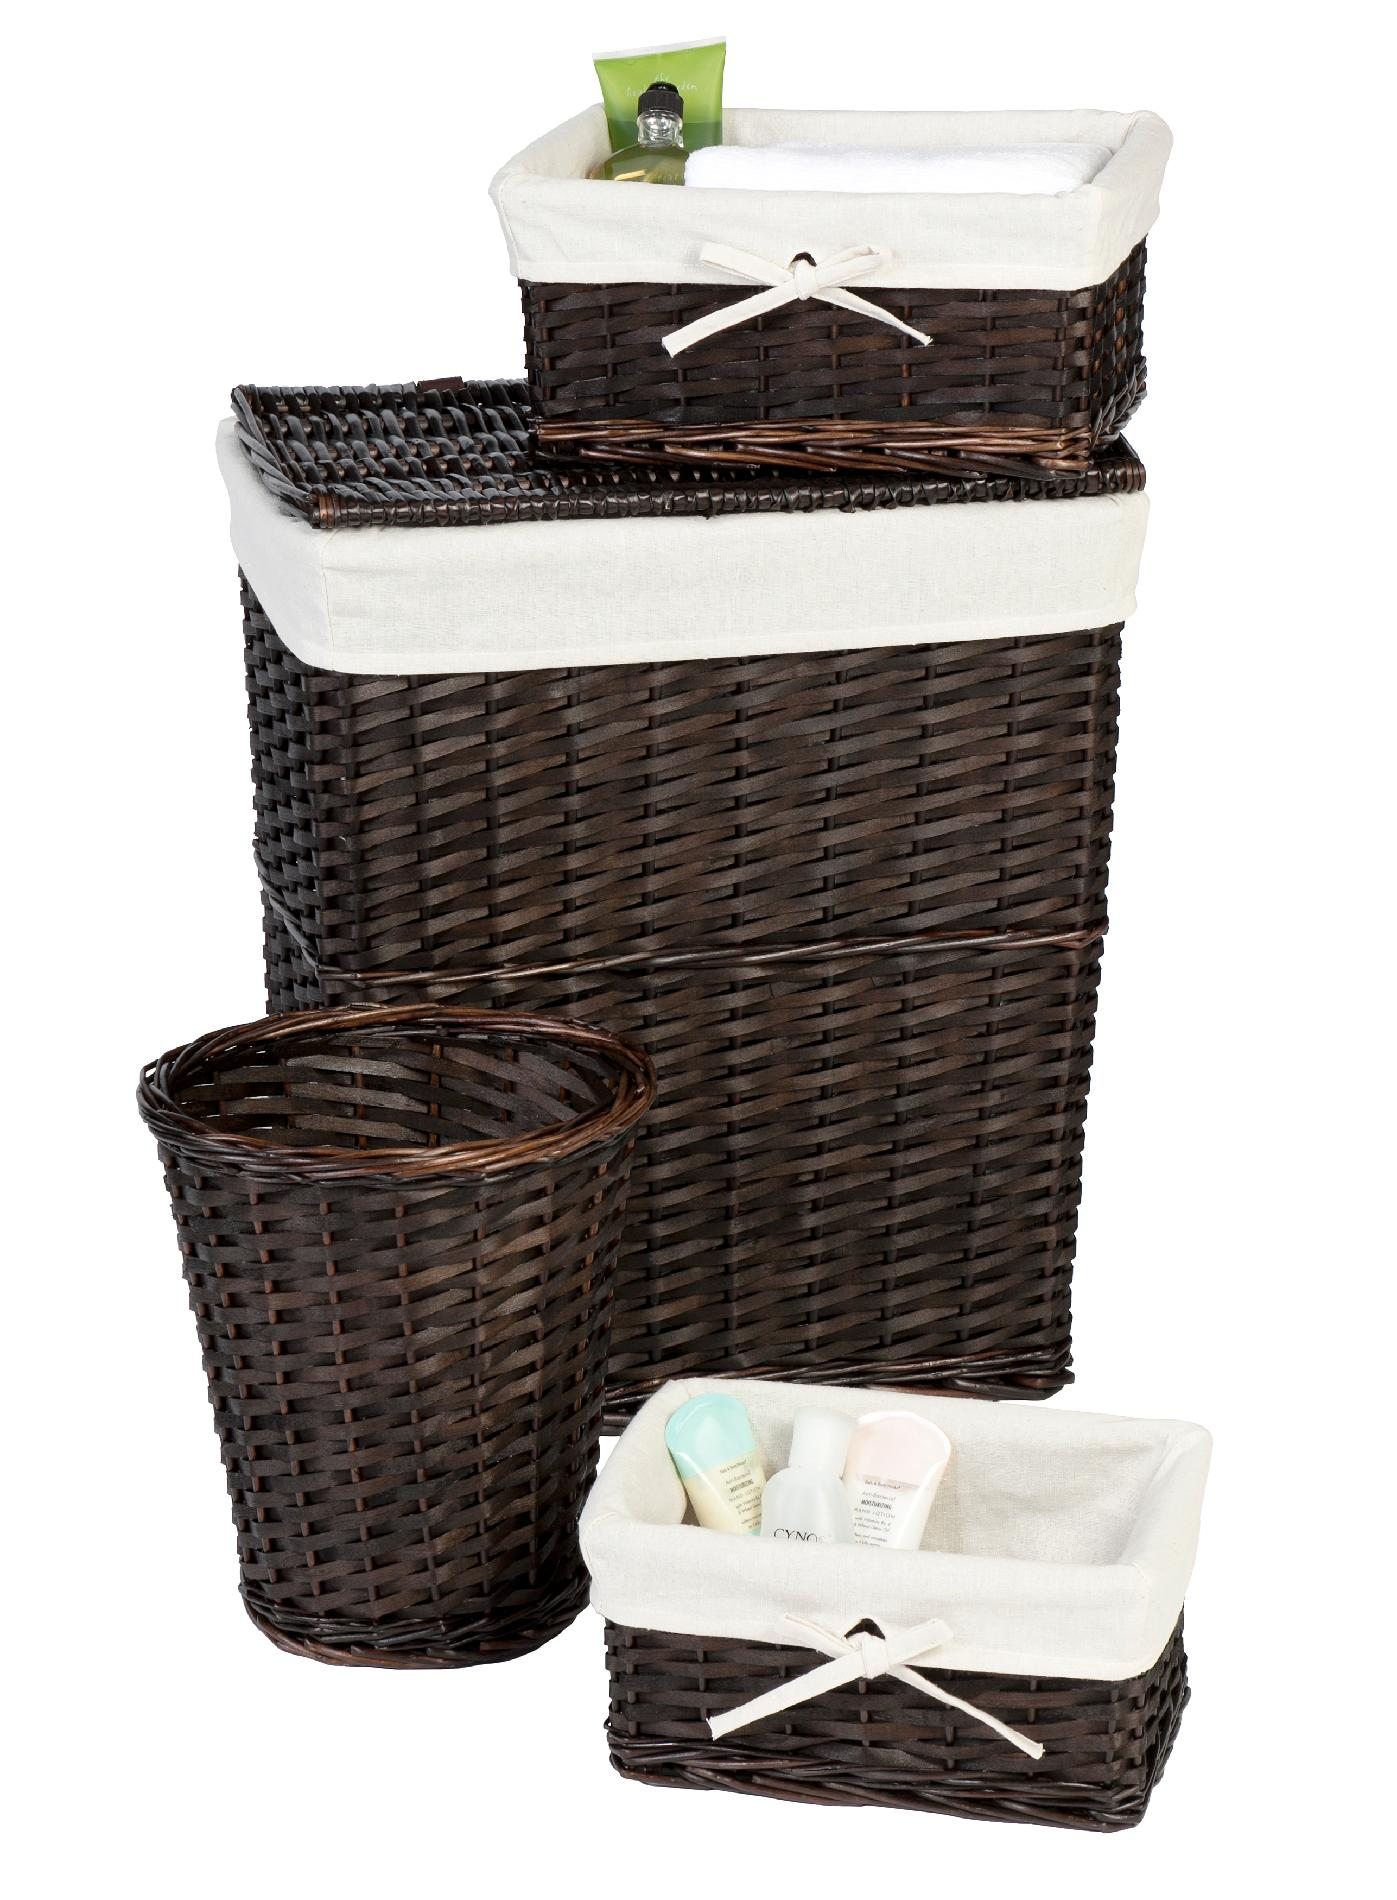 Wicker Laundry Baskets Lancaster Dark Brown Espresso 4 Pc Wicker Hamper Set